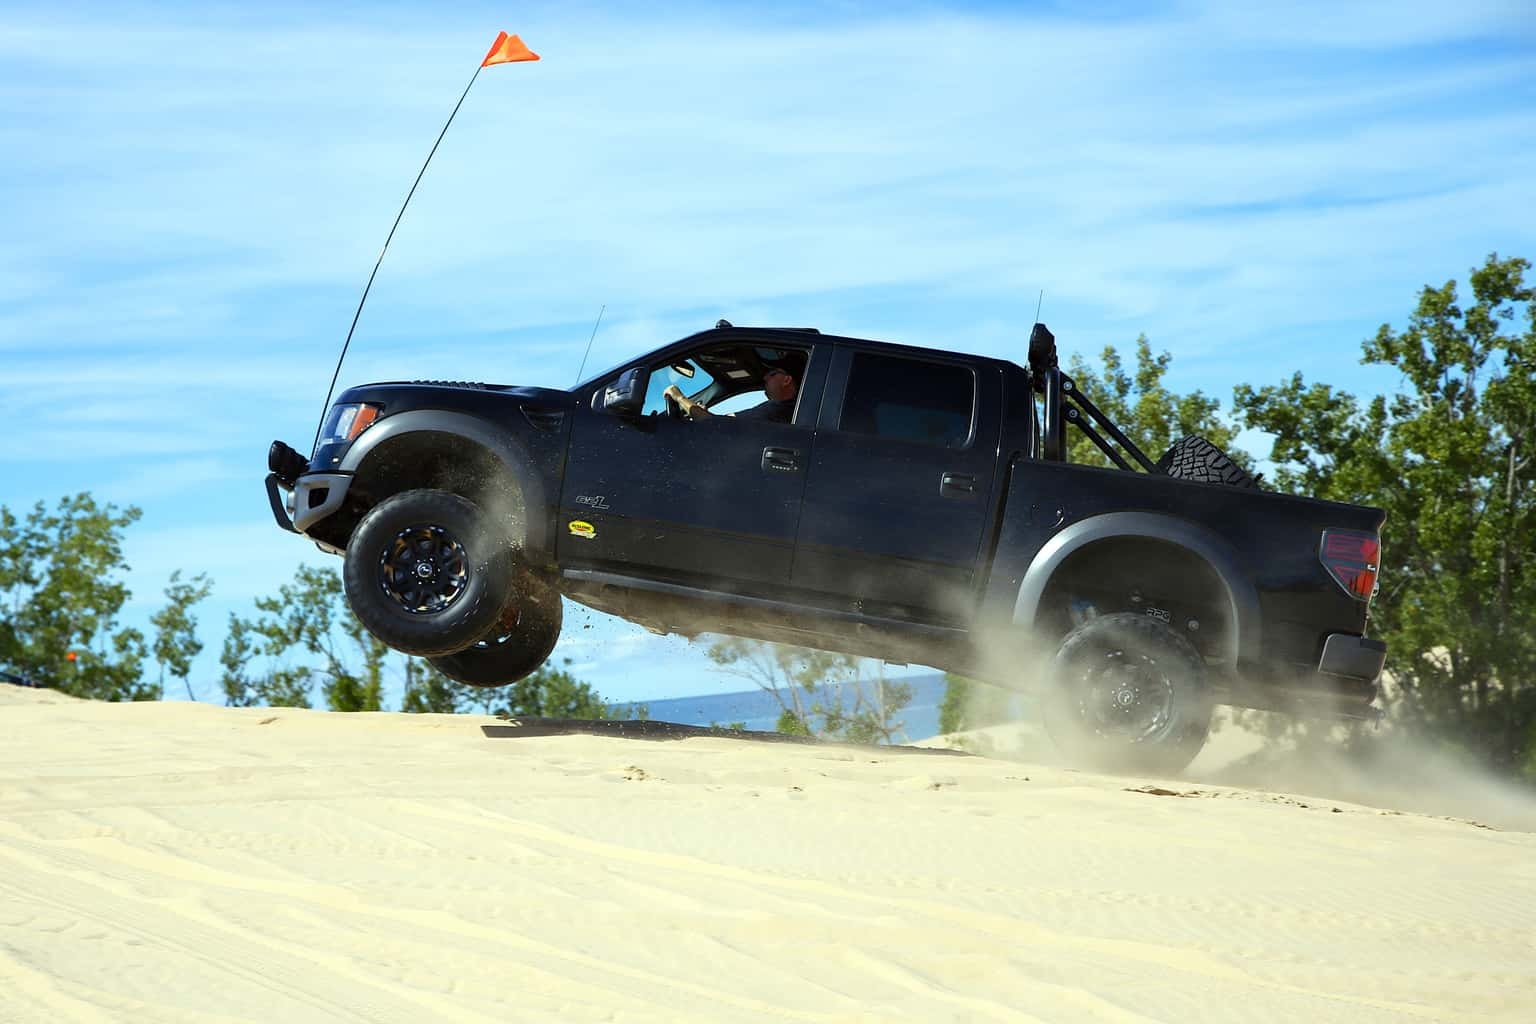 The Inside Look: Michigan's Dune Buggy Culture - Awesome Mitten